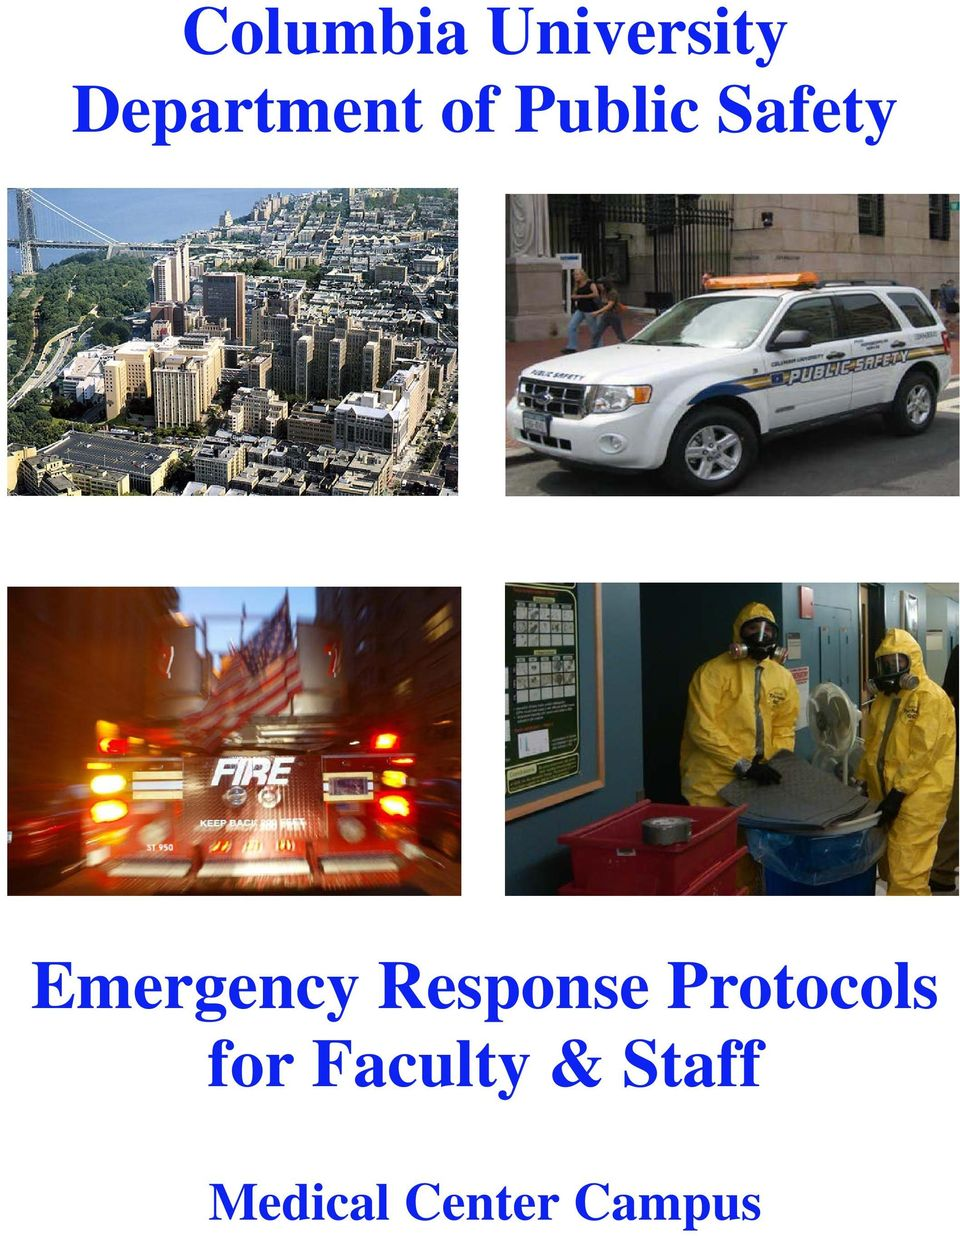 Emergency Response Protocols